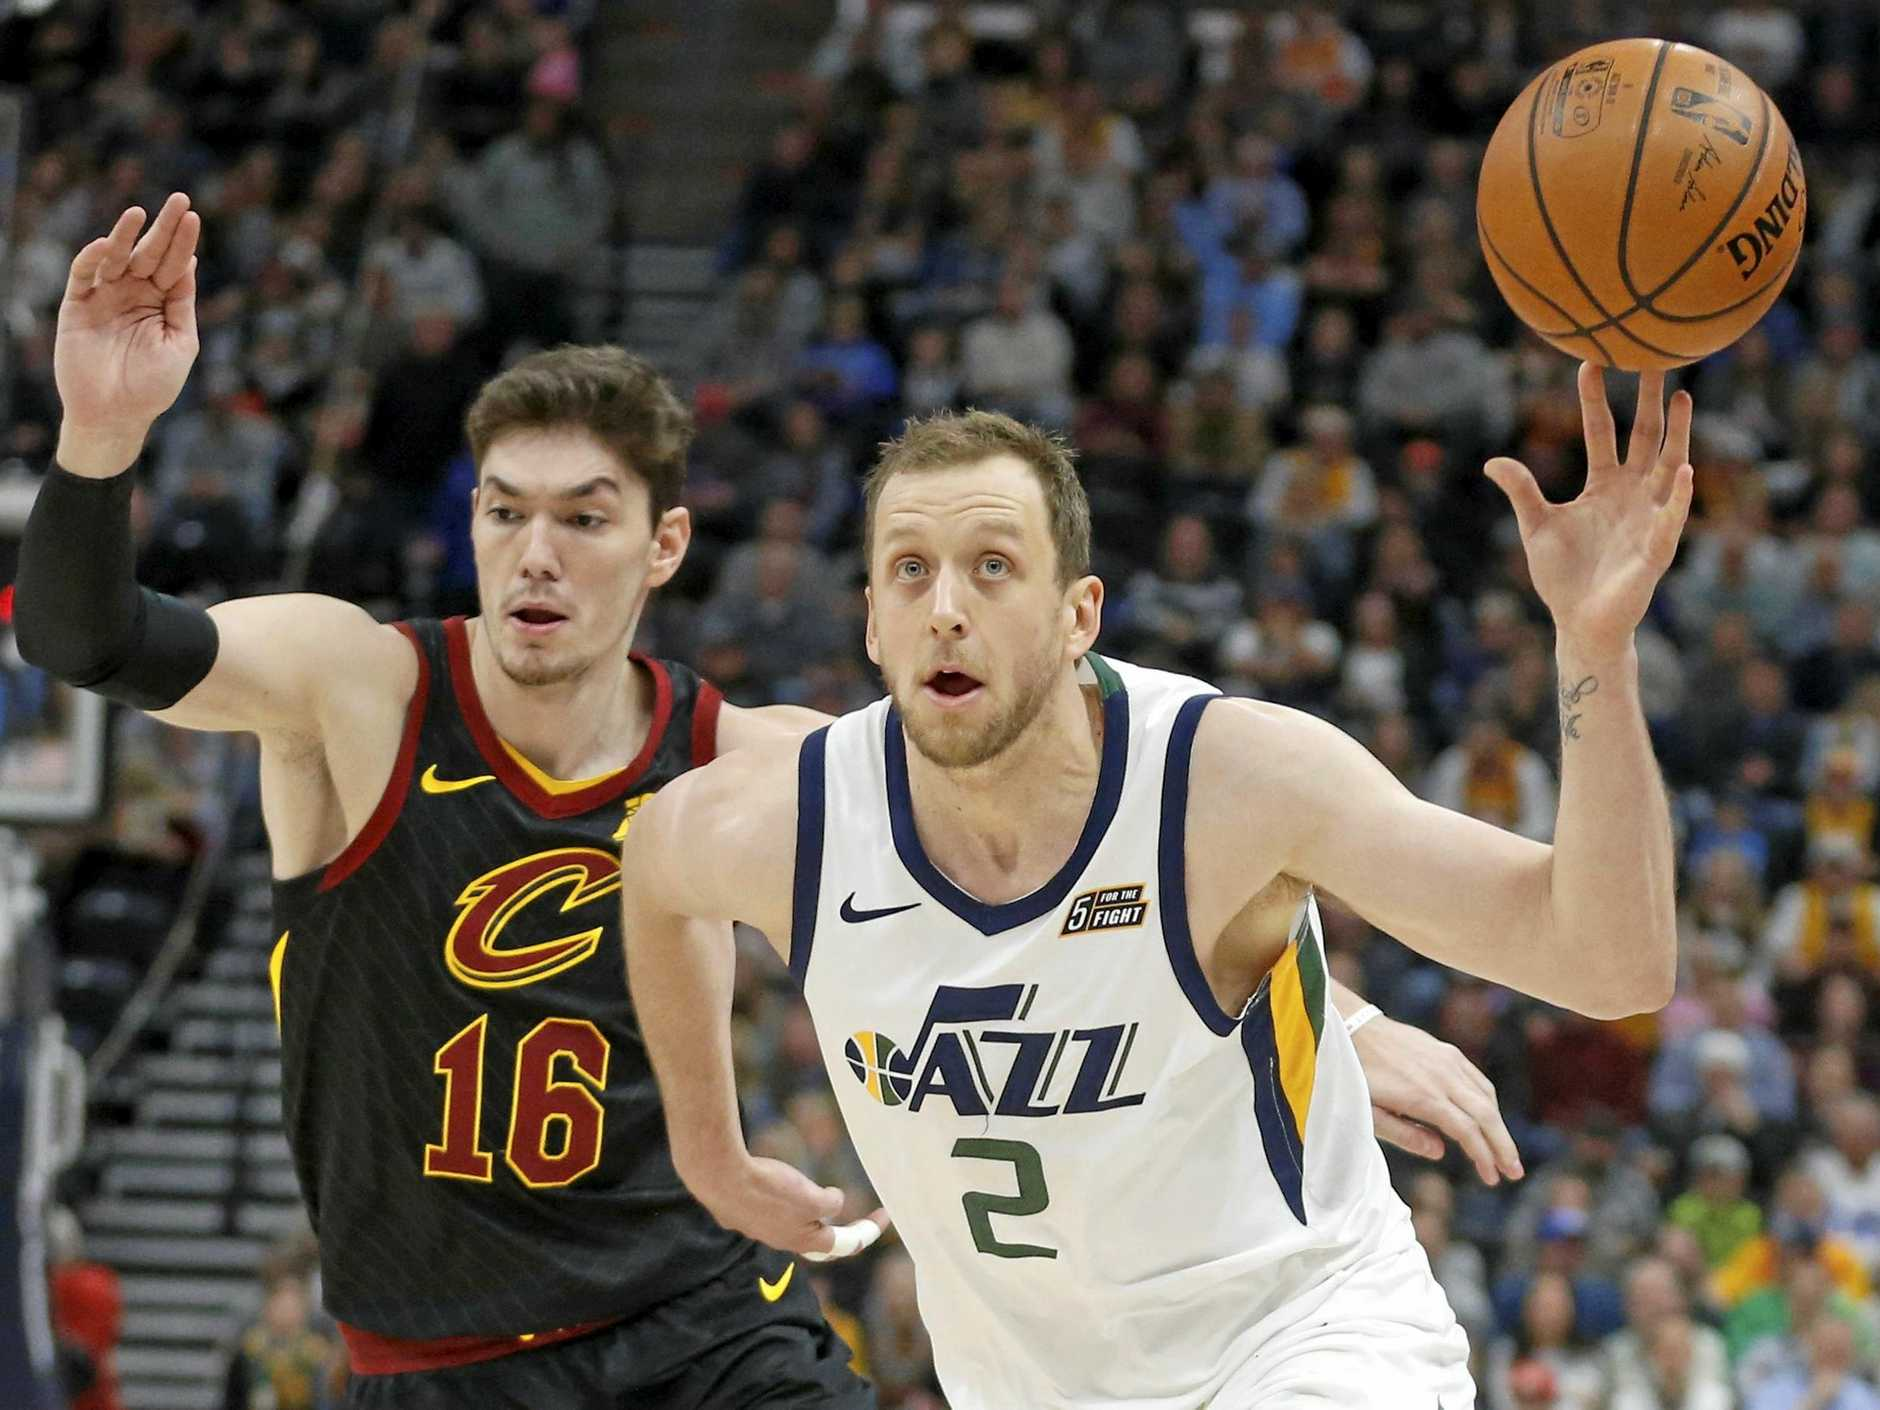 Cleveland Cavaliers forward Cedi Osman guards the Utah Jazz's Joe Ingles during the first half in Salt Lake City.  Picture: Rick Bowmer/AP